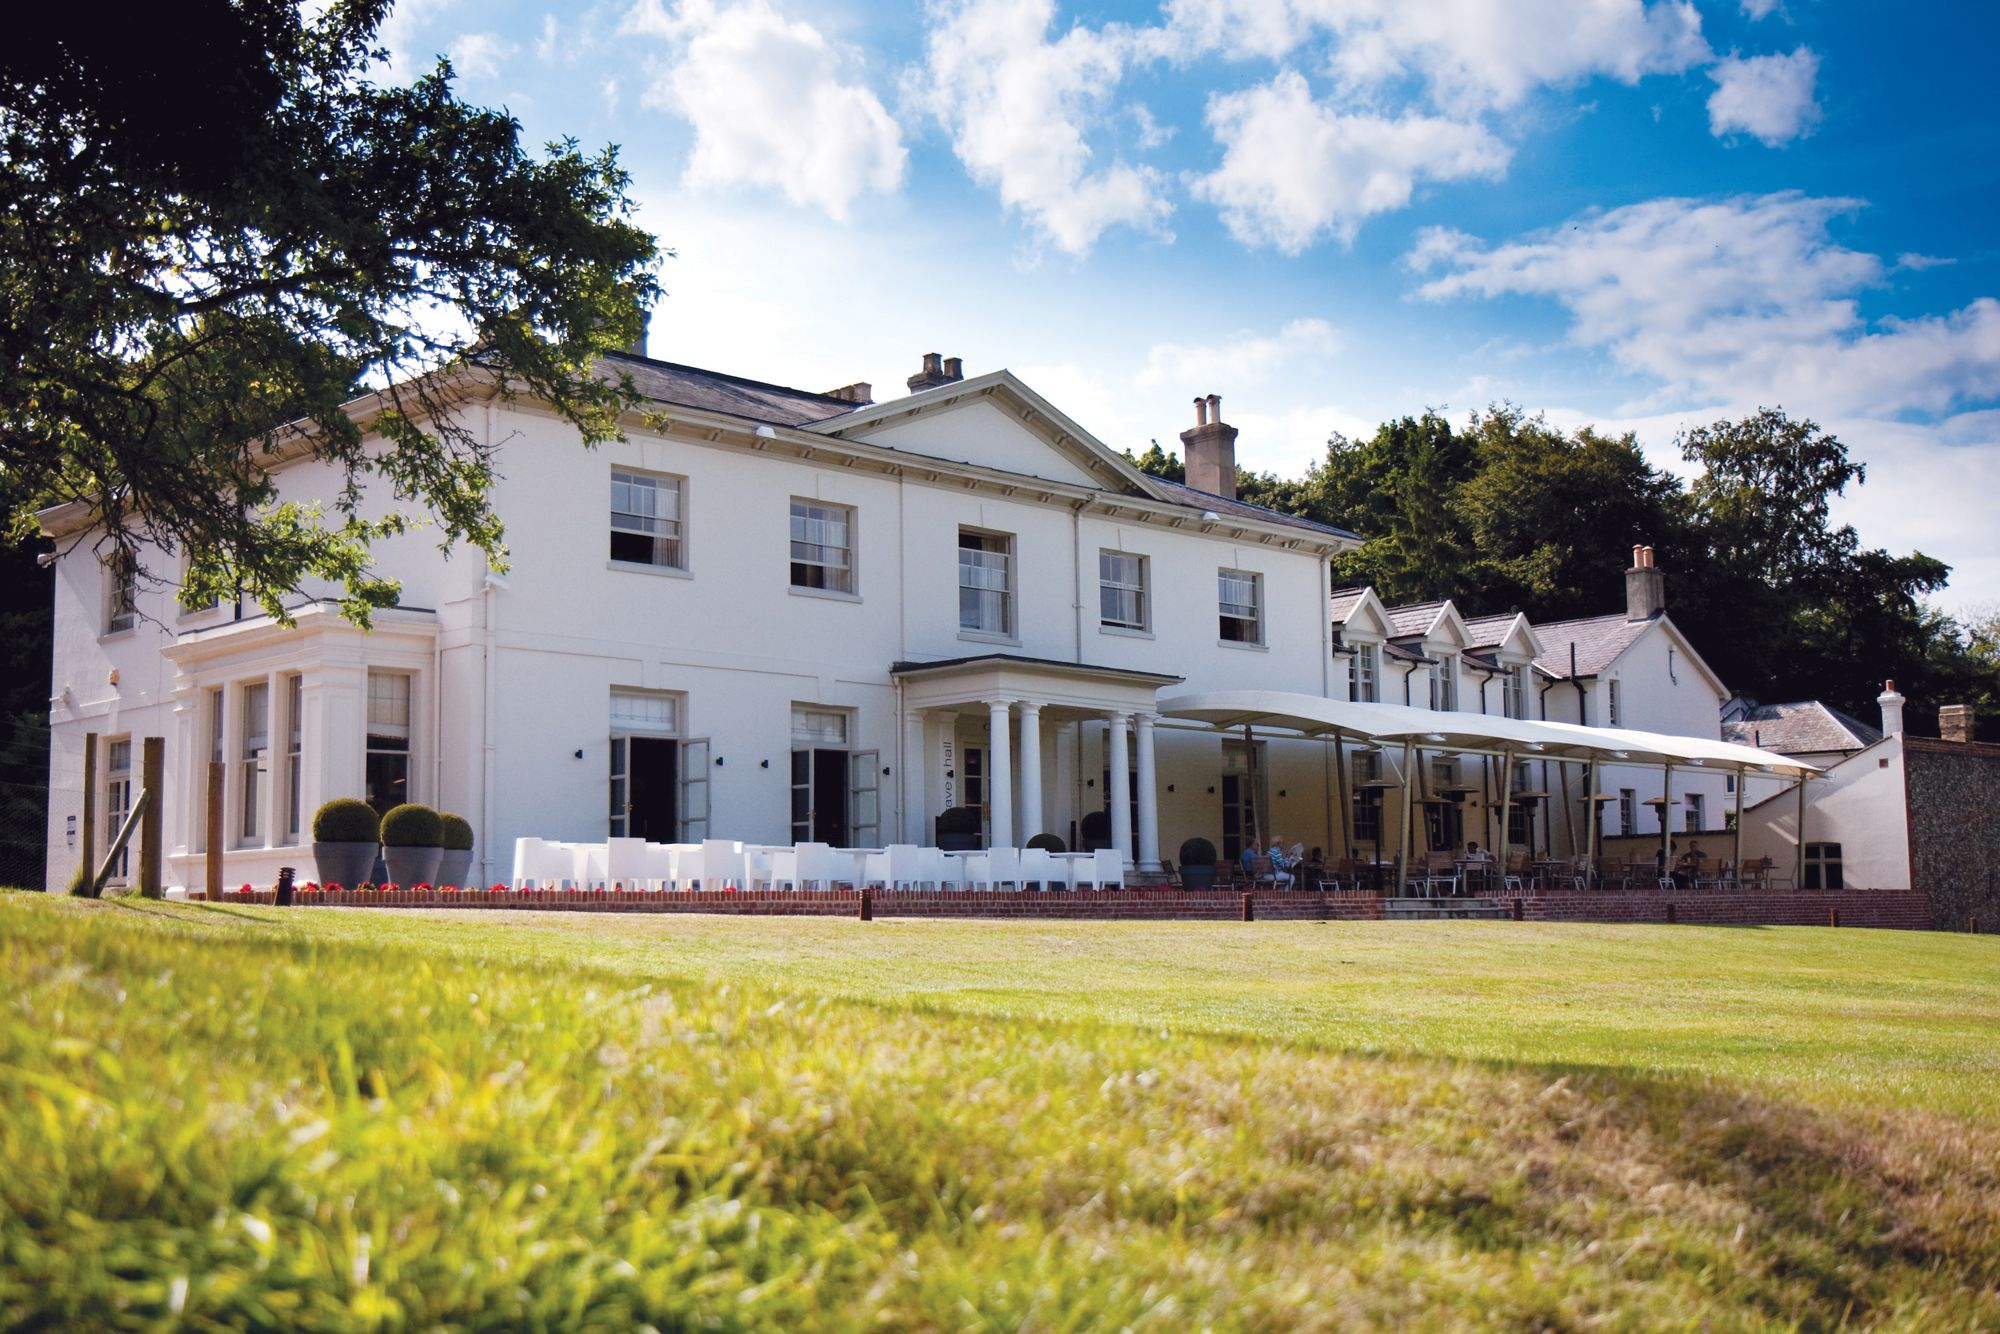 Hotels in Suffolk holidays at Cool Places